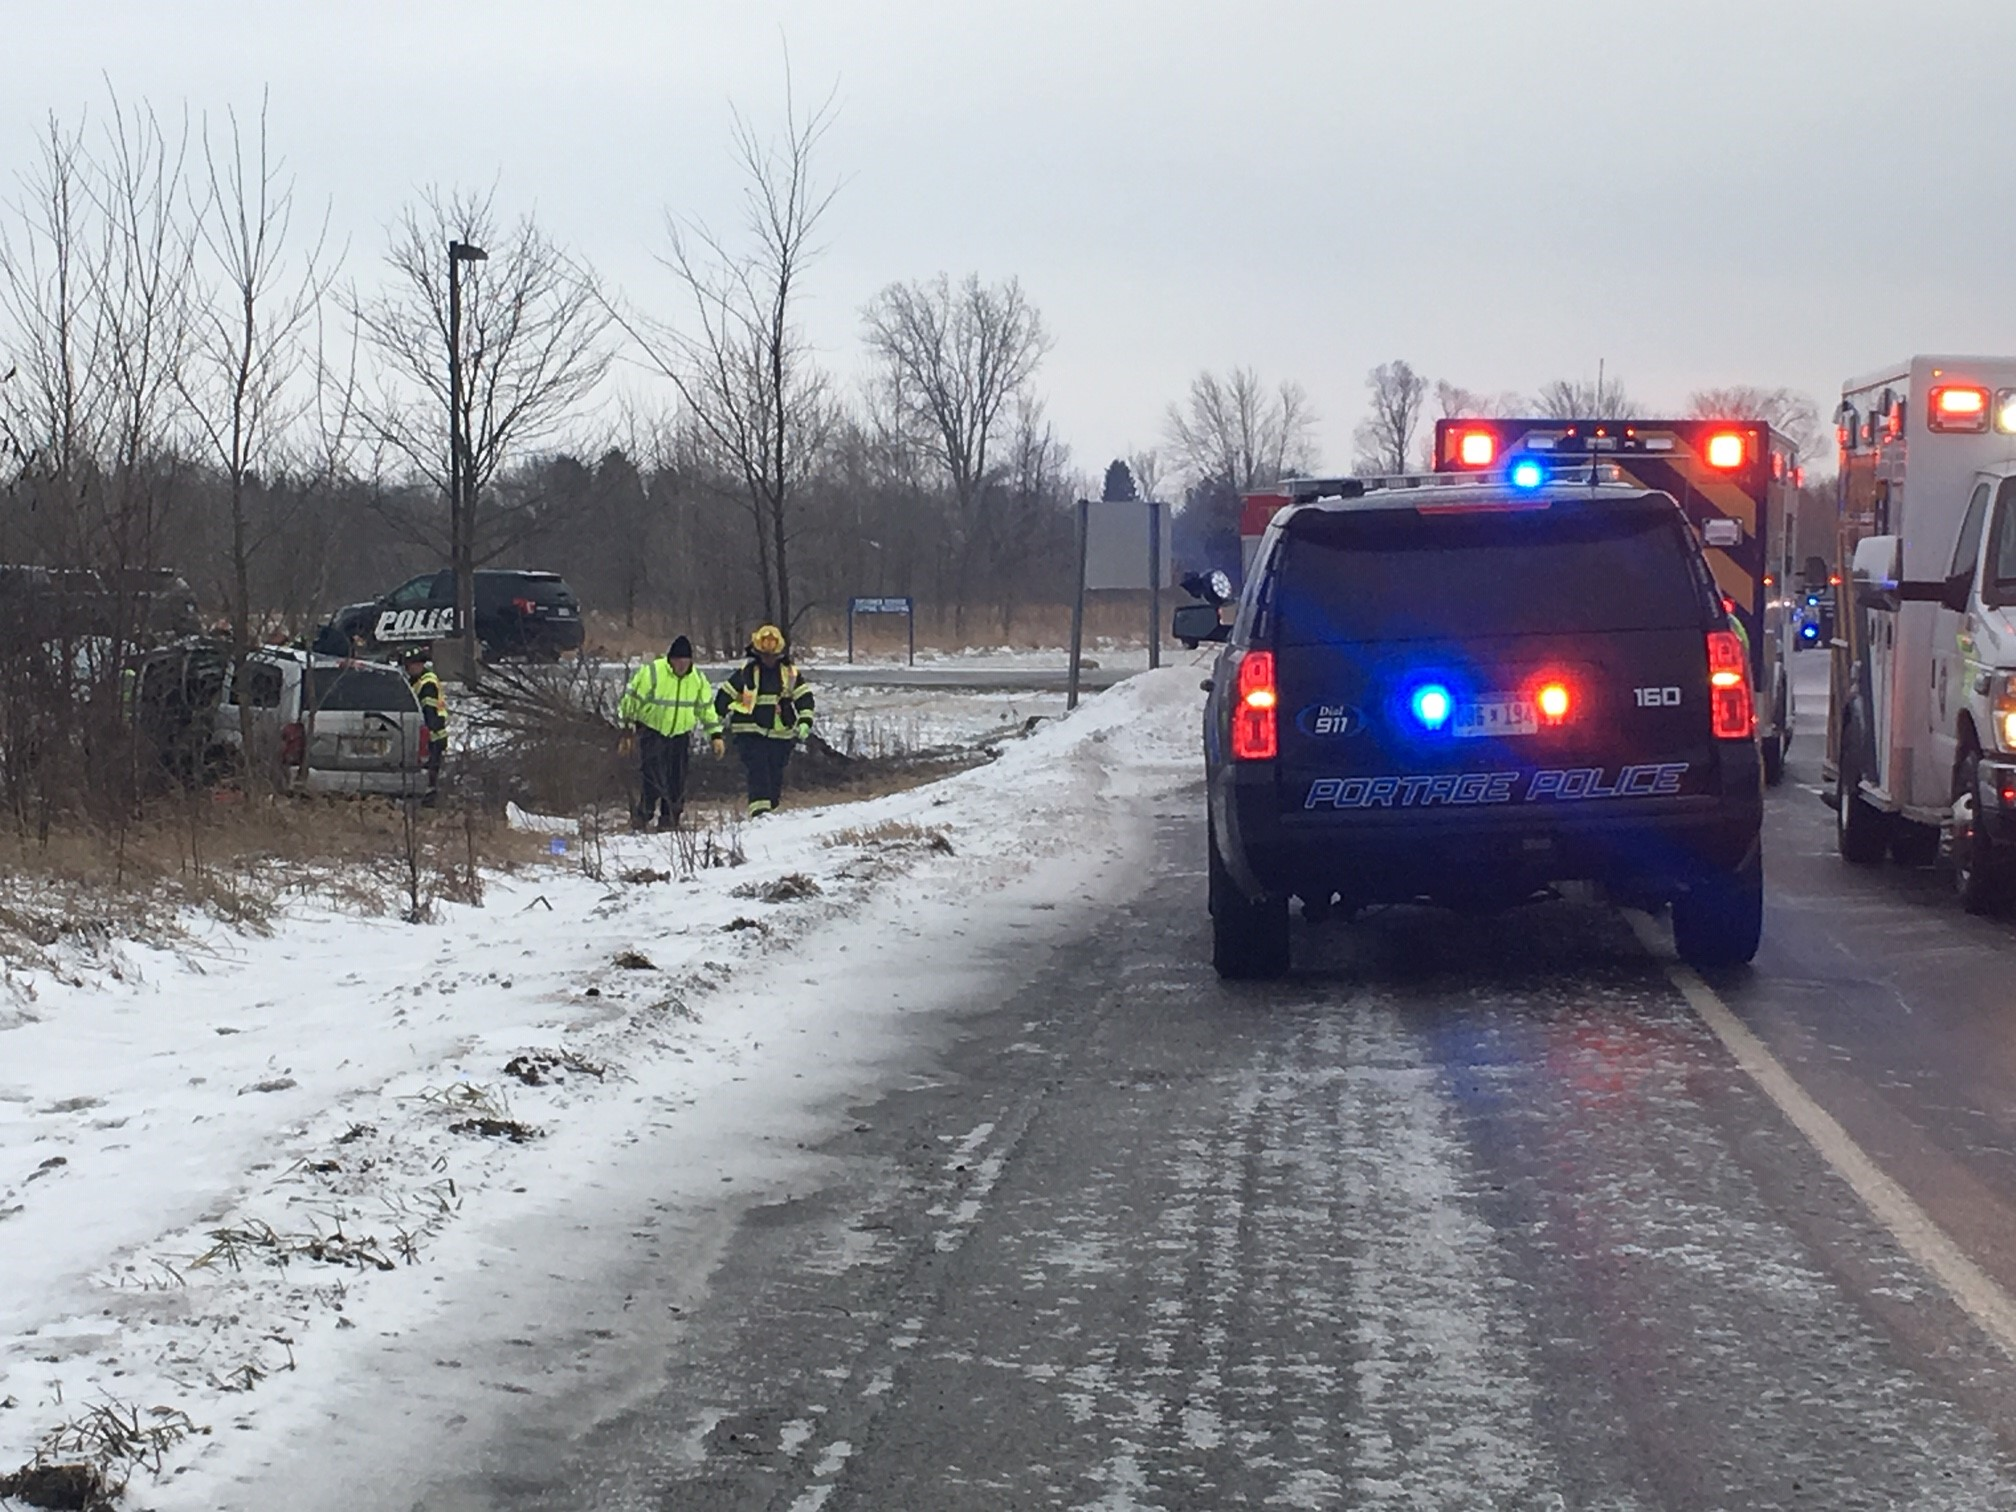 An accident near Sprinkle Road in Portage, where a minivan lost control and crashed. (WWMT/Mike Krafcik)